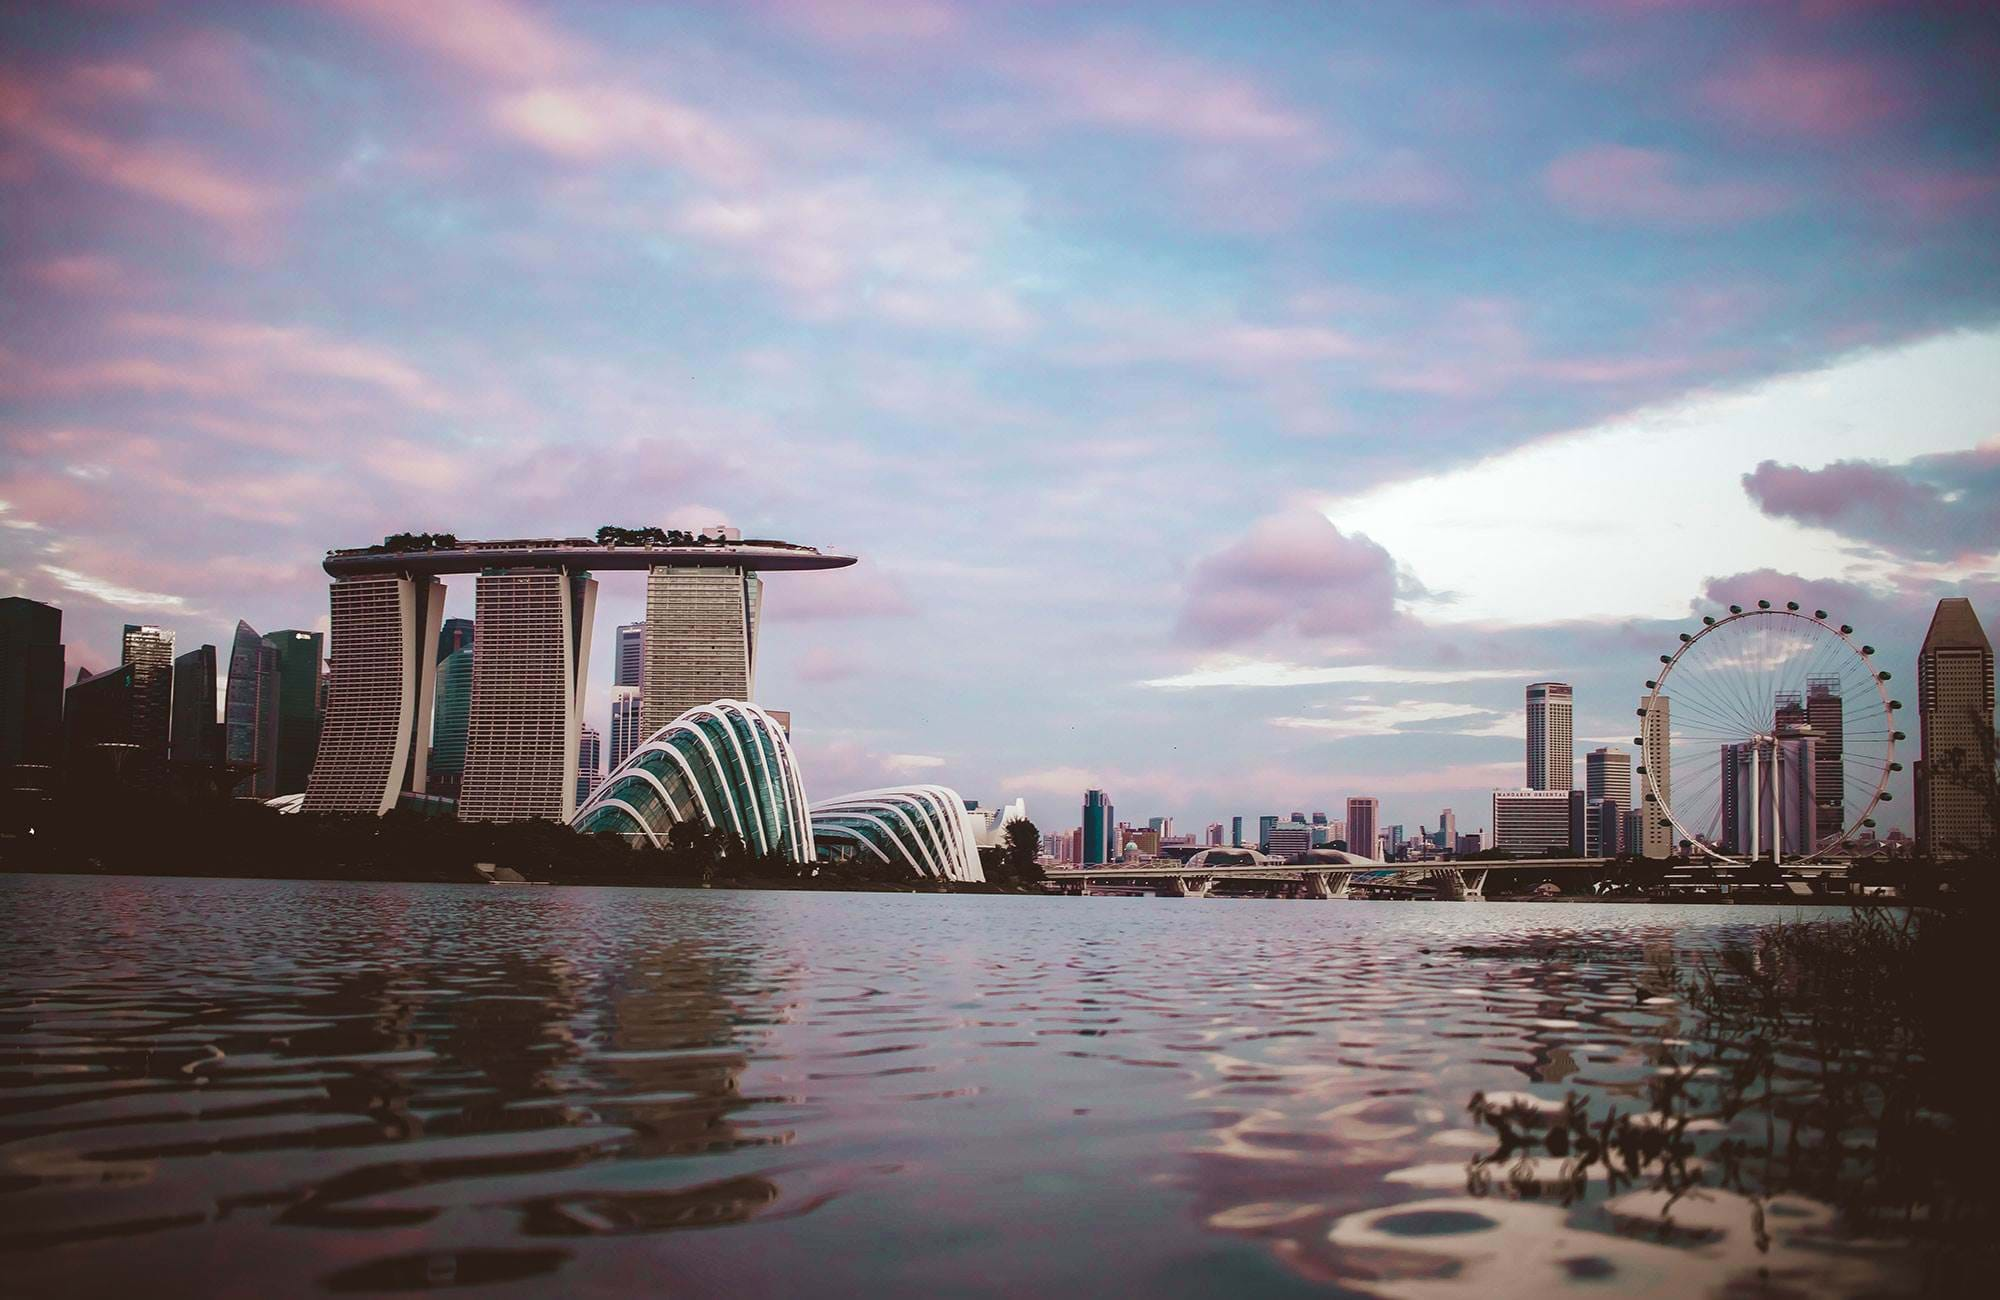 Marina Bay Sands i Singapore